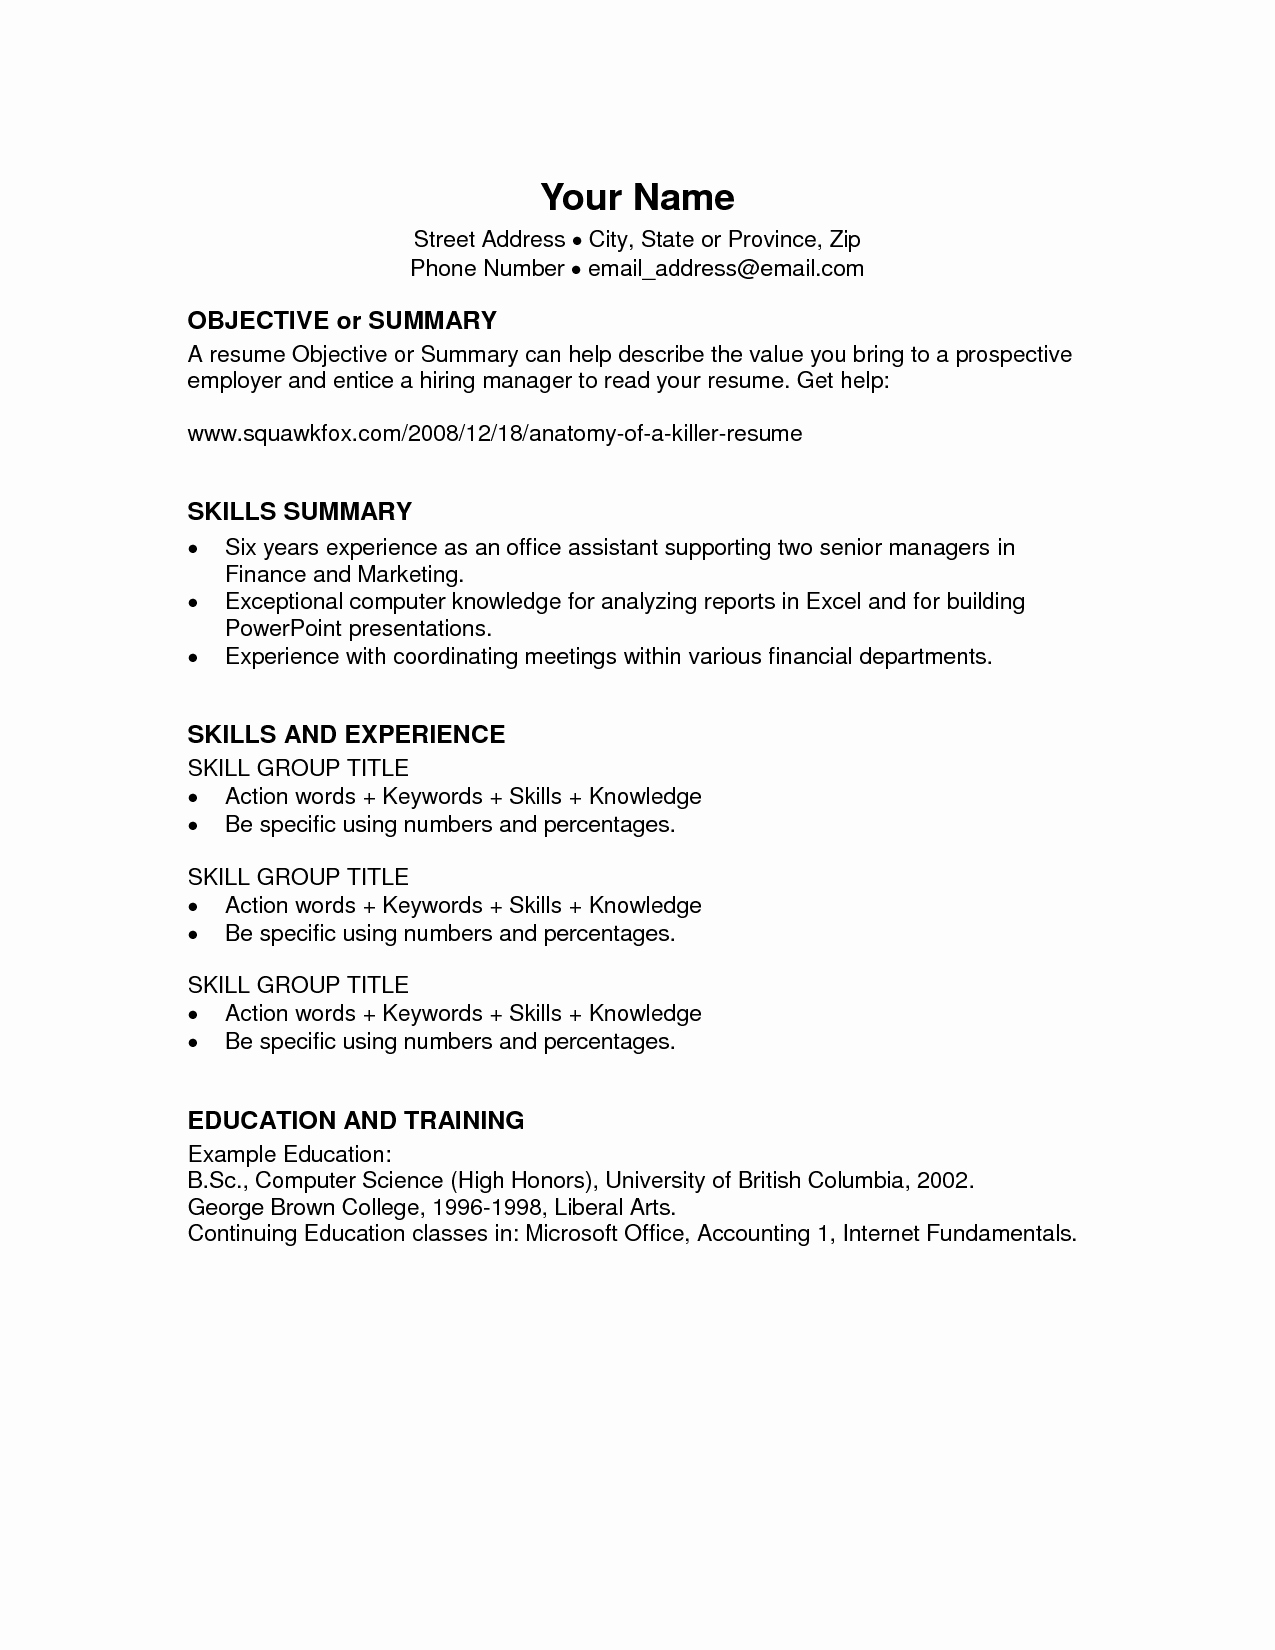 Microsoft Word 2003 Resume Templates Unique Microsoft Fice Resume Templates